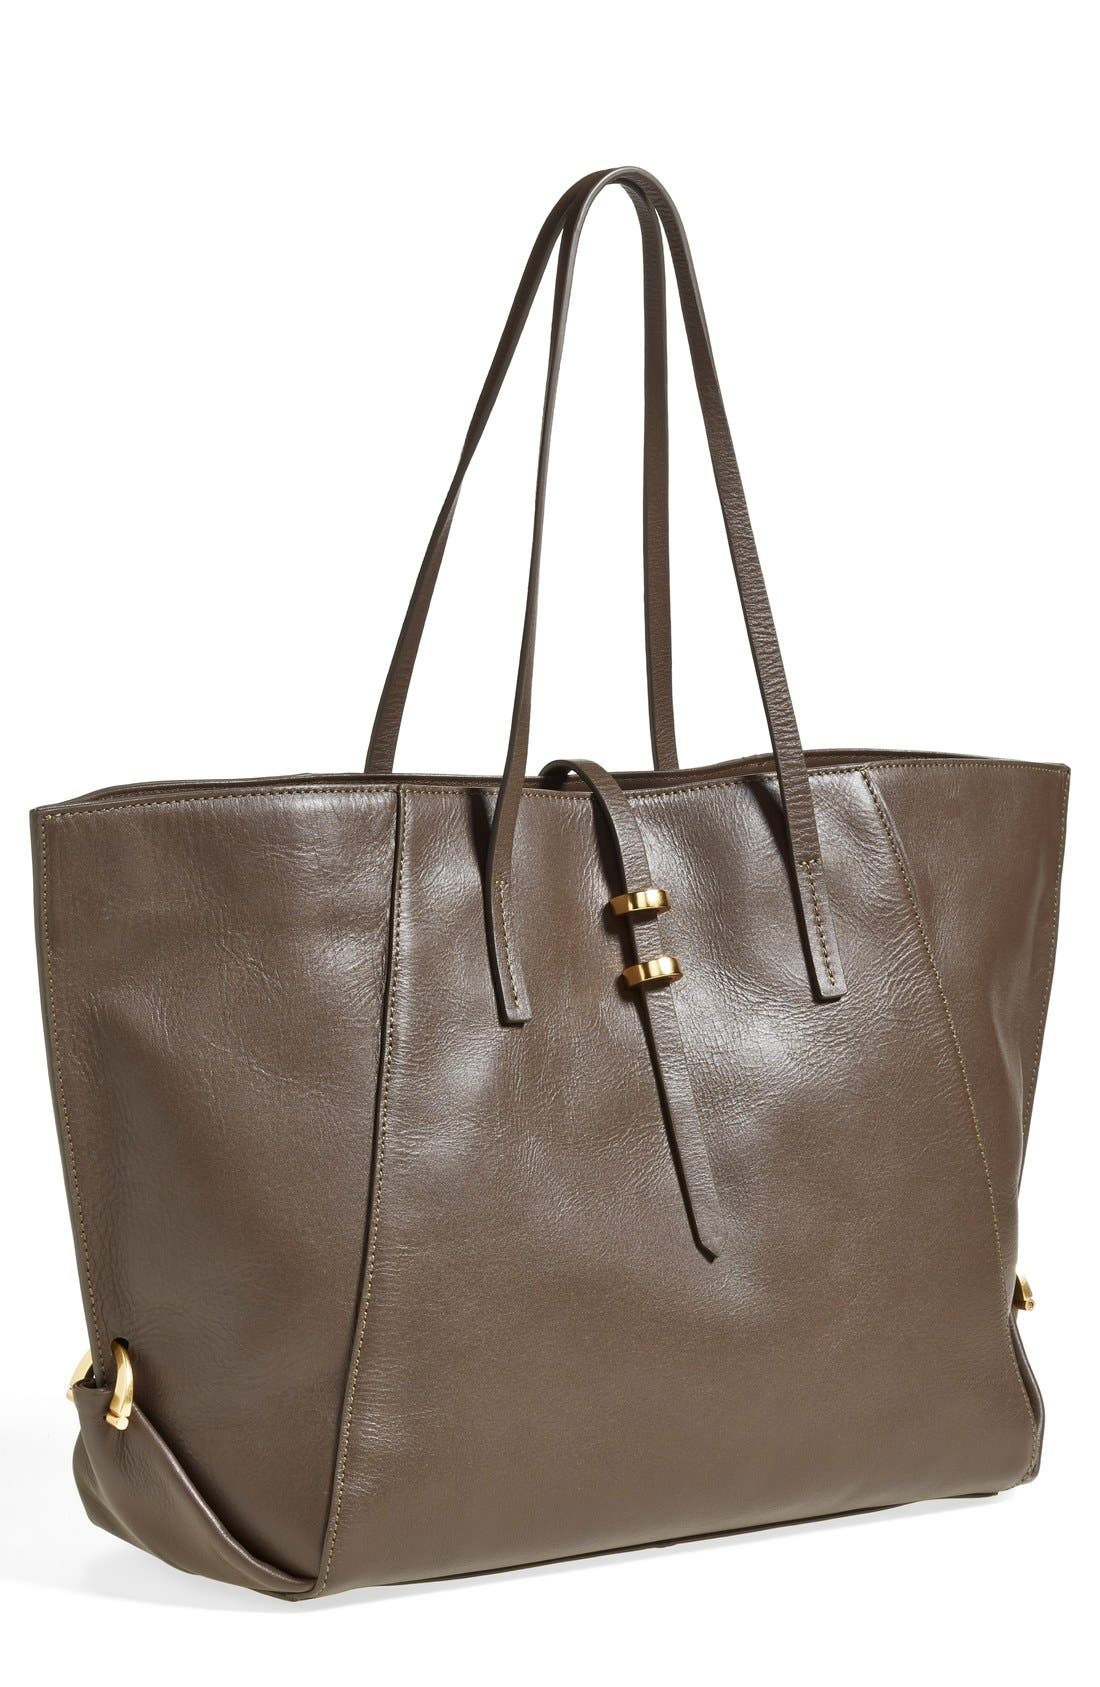 Main Image - ZAC Zac Posen 'Eartha' Leather Shopper